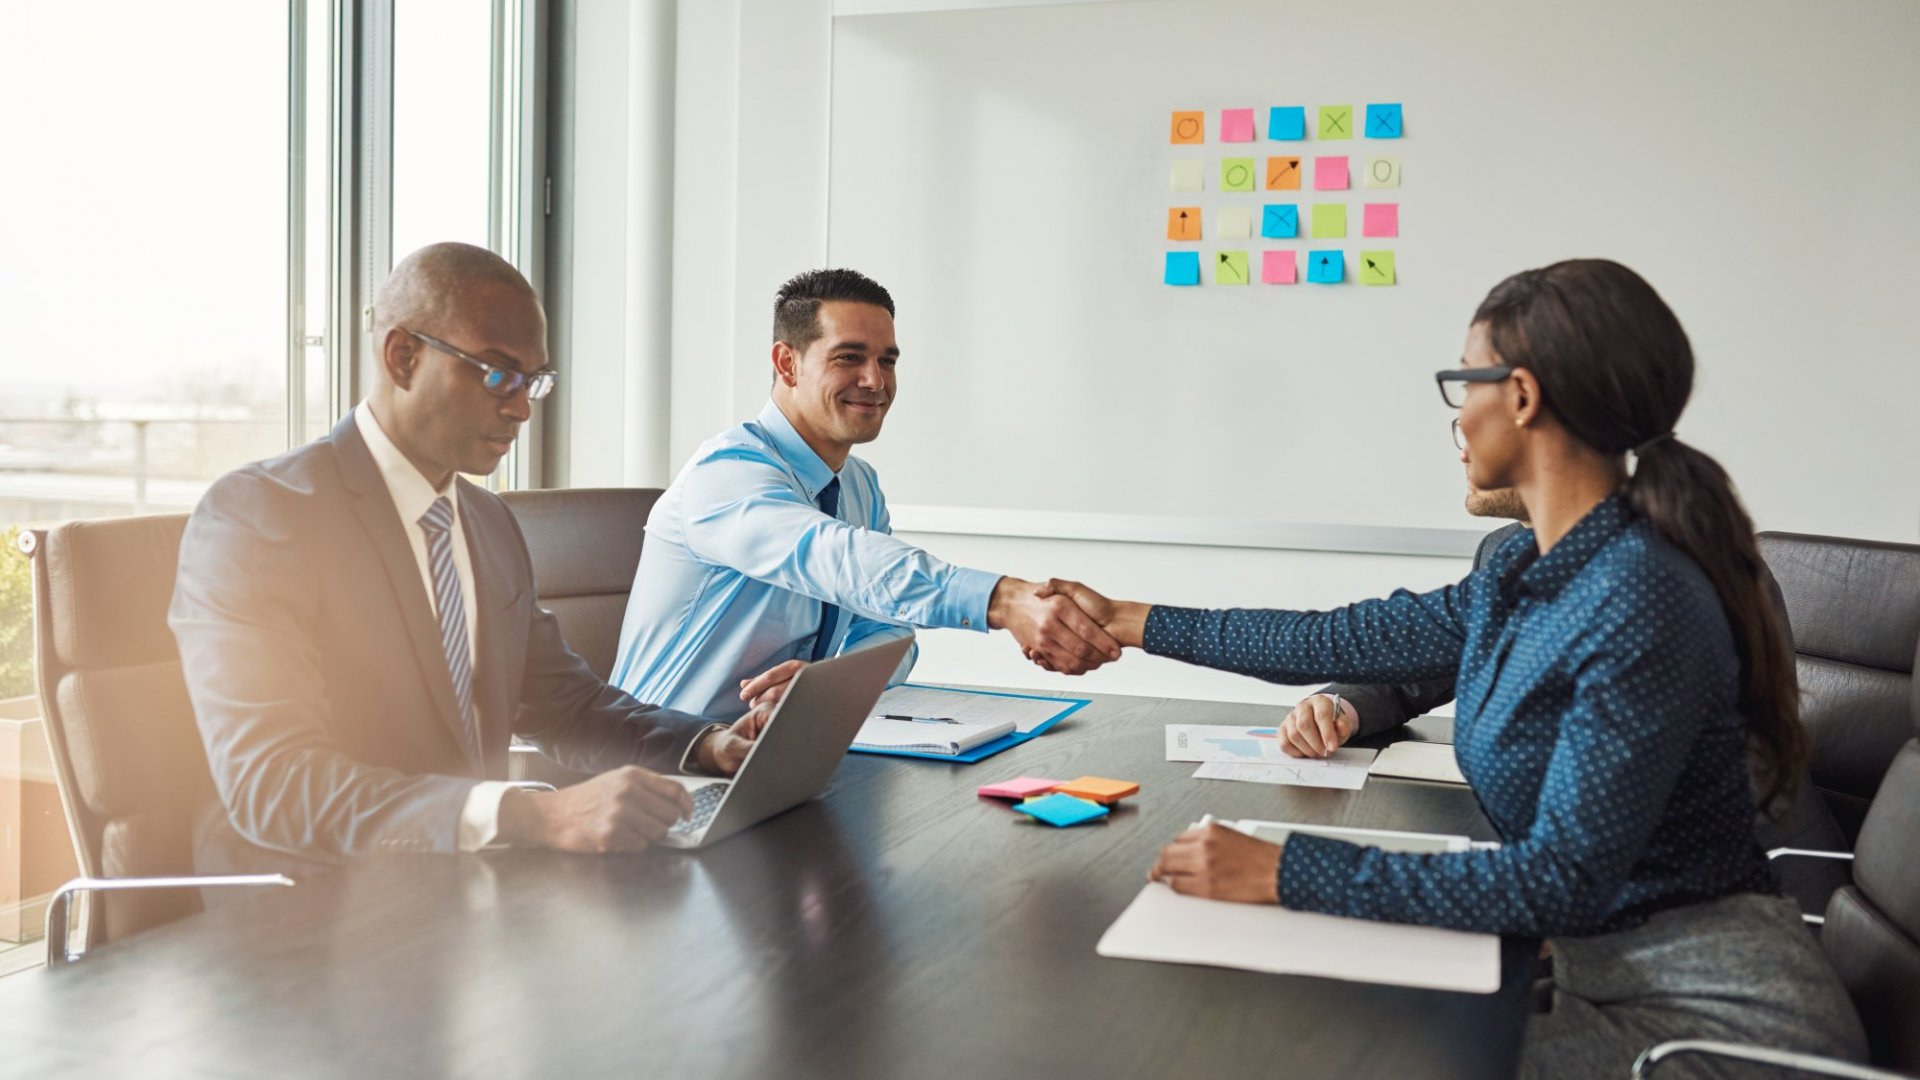 3 Ways to Show Your Value During a Contract Negotiation